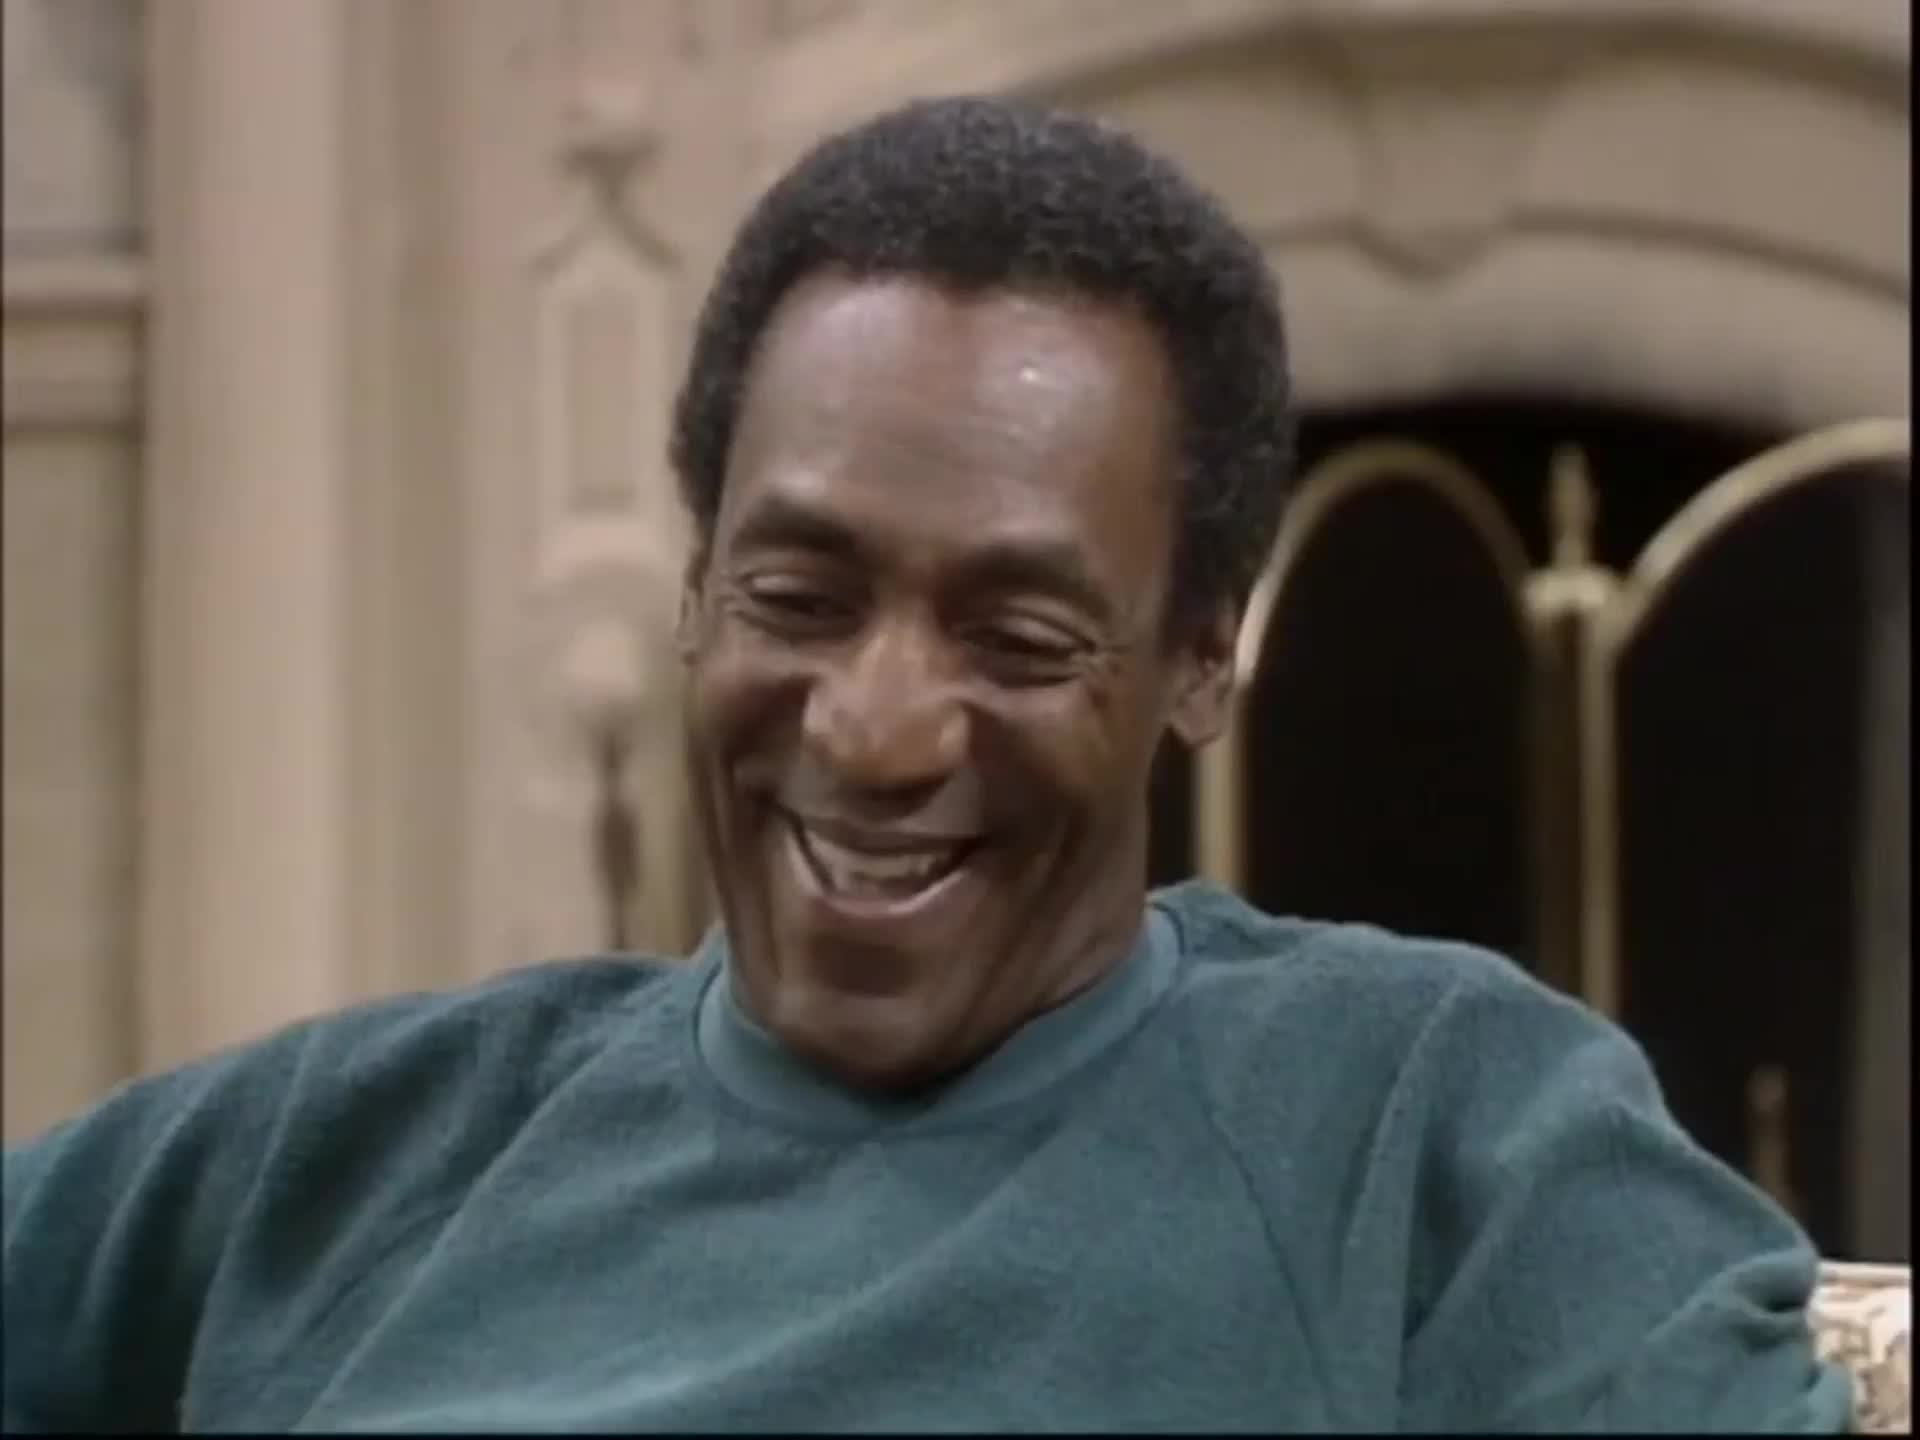 The Cosby Show - Season 1 Episode  05 Cliff (Bill Cosby) blows his top when s...